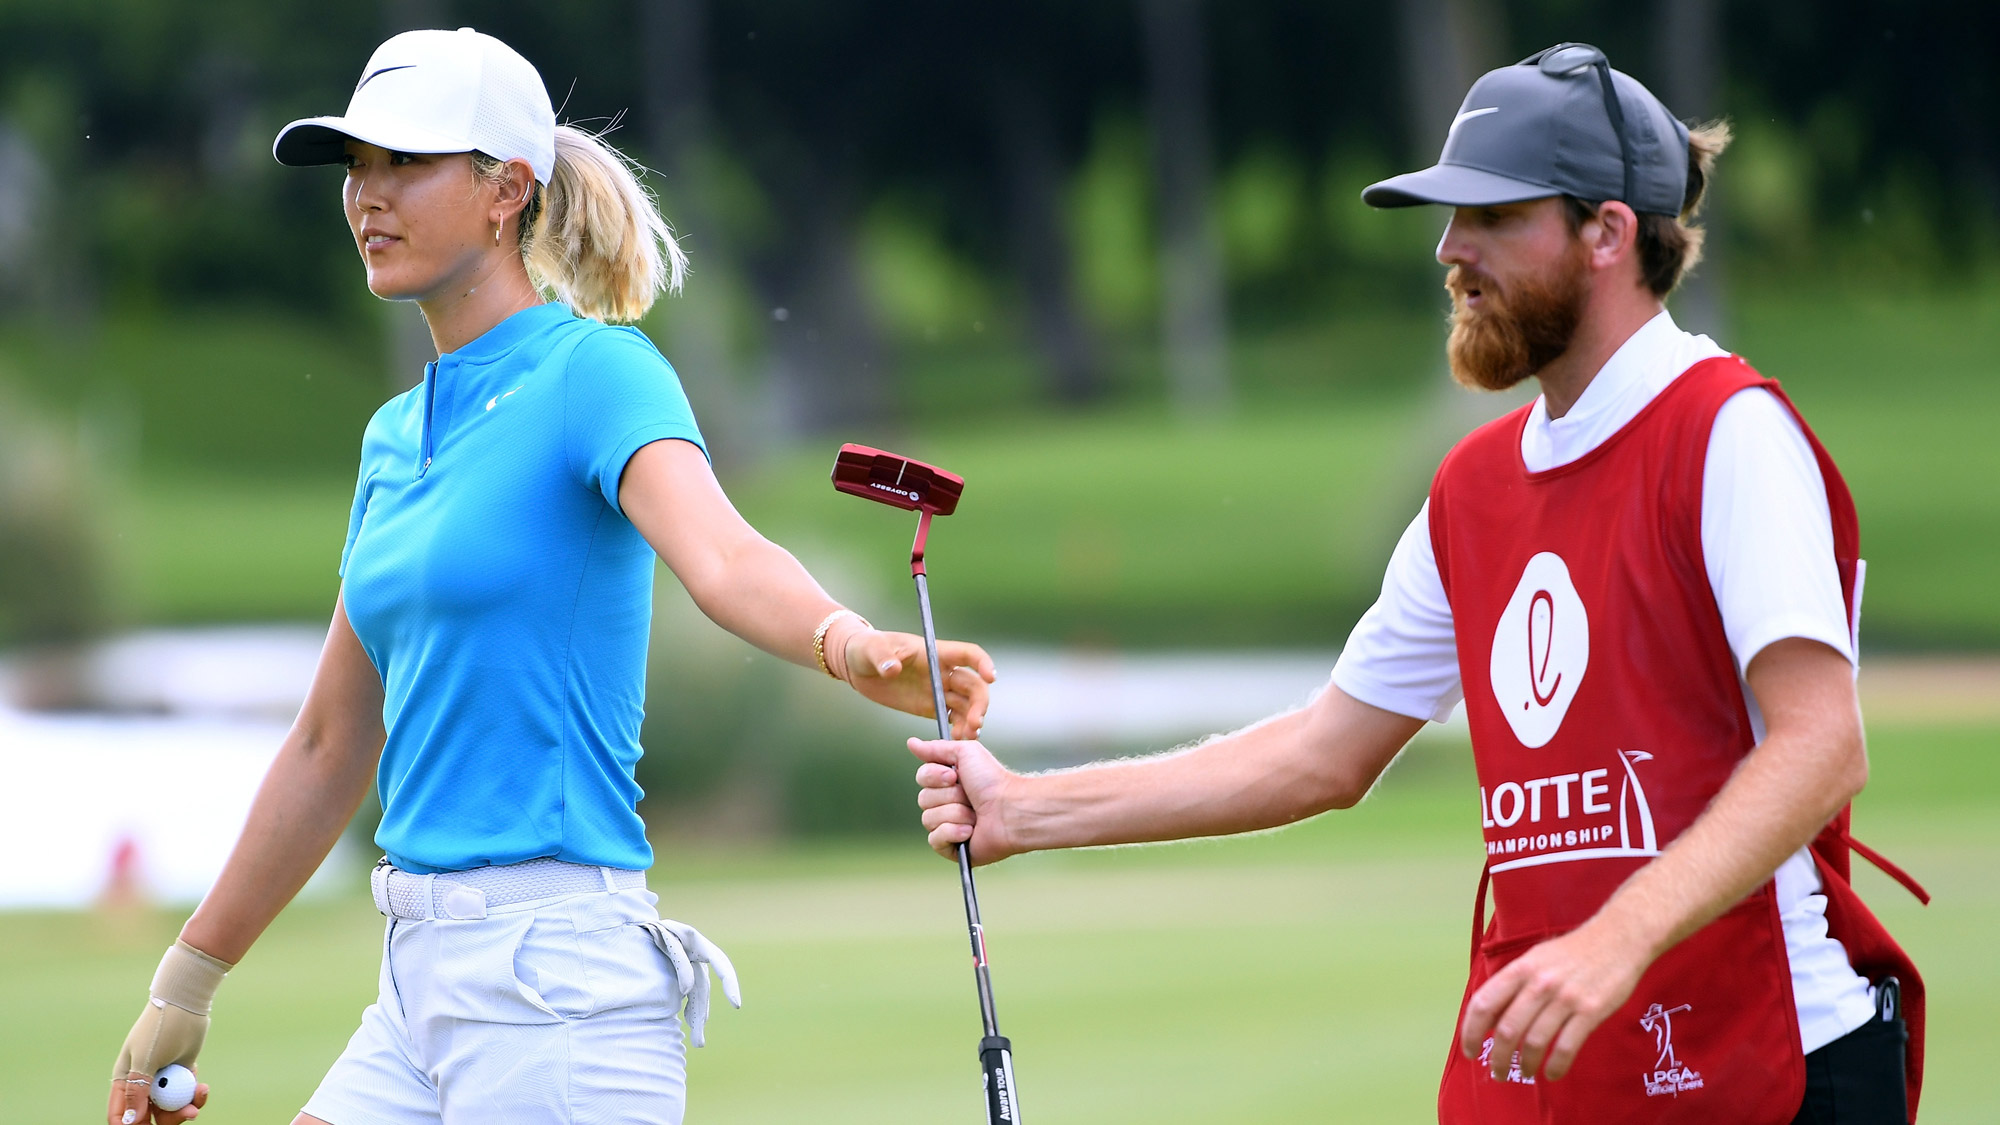 Michelle Wie Hands Her Putter Back at LOTTE